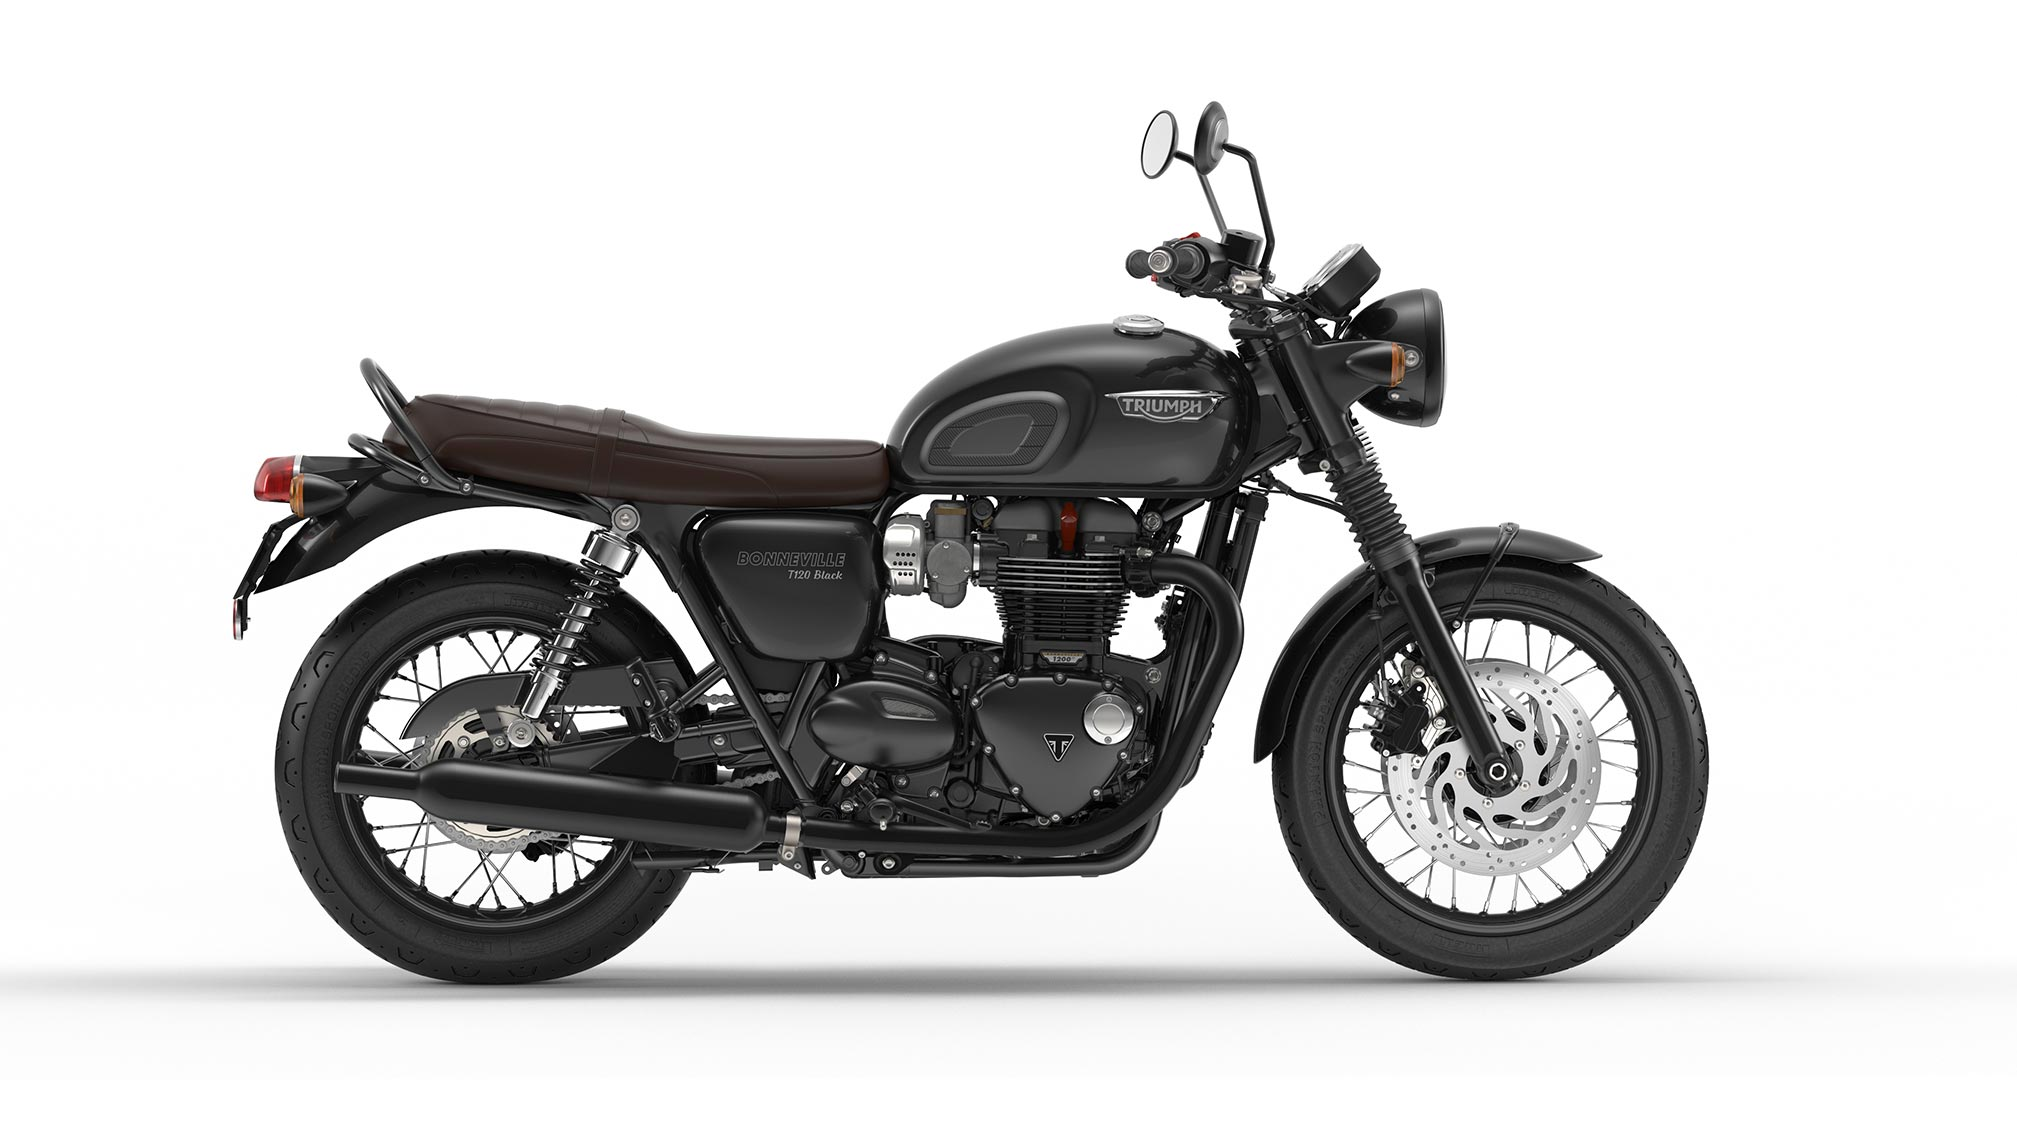 2017 Triumph Bonneville T120 Black Review